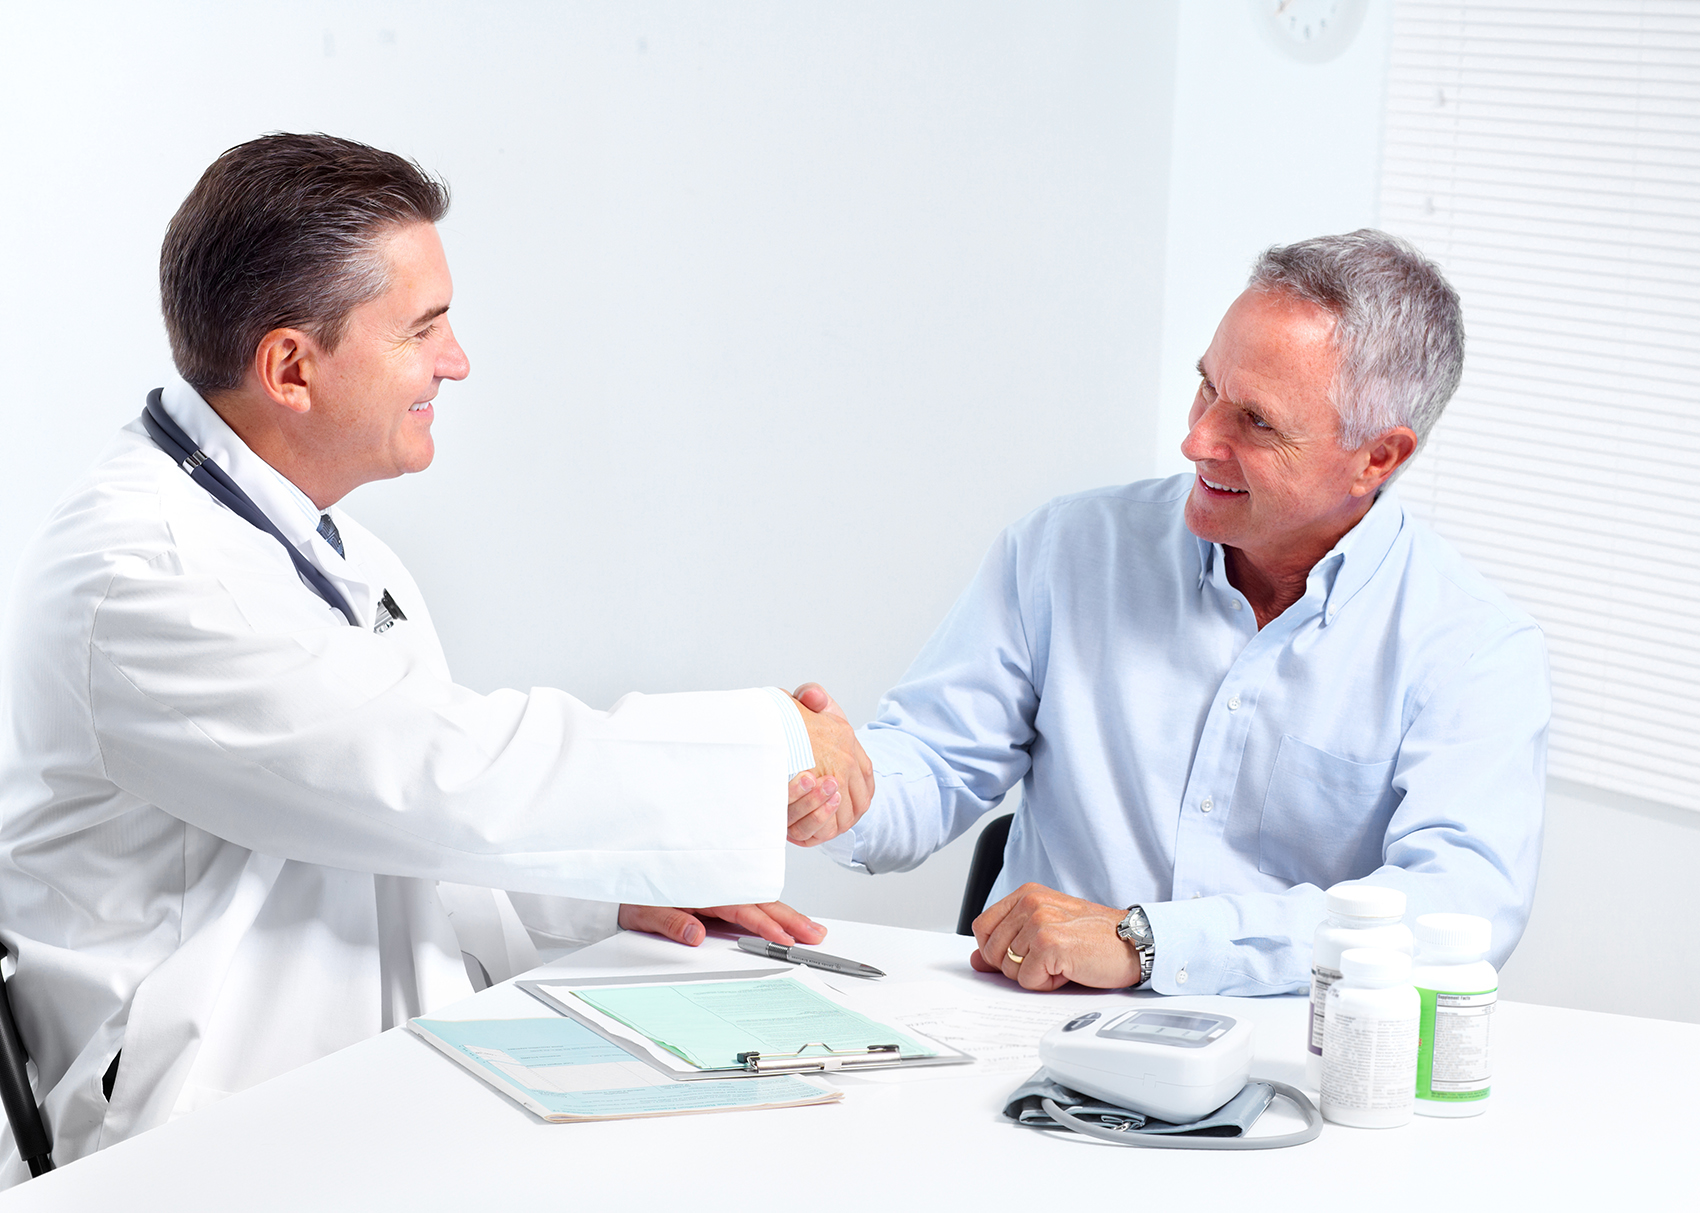 Developing Patient Adherence